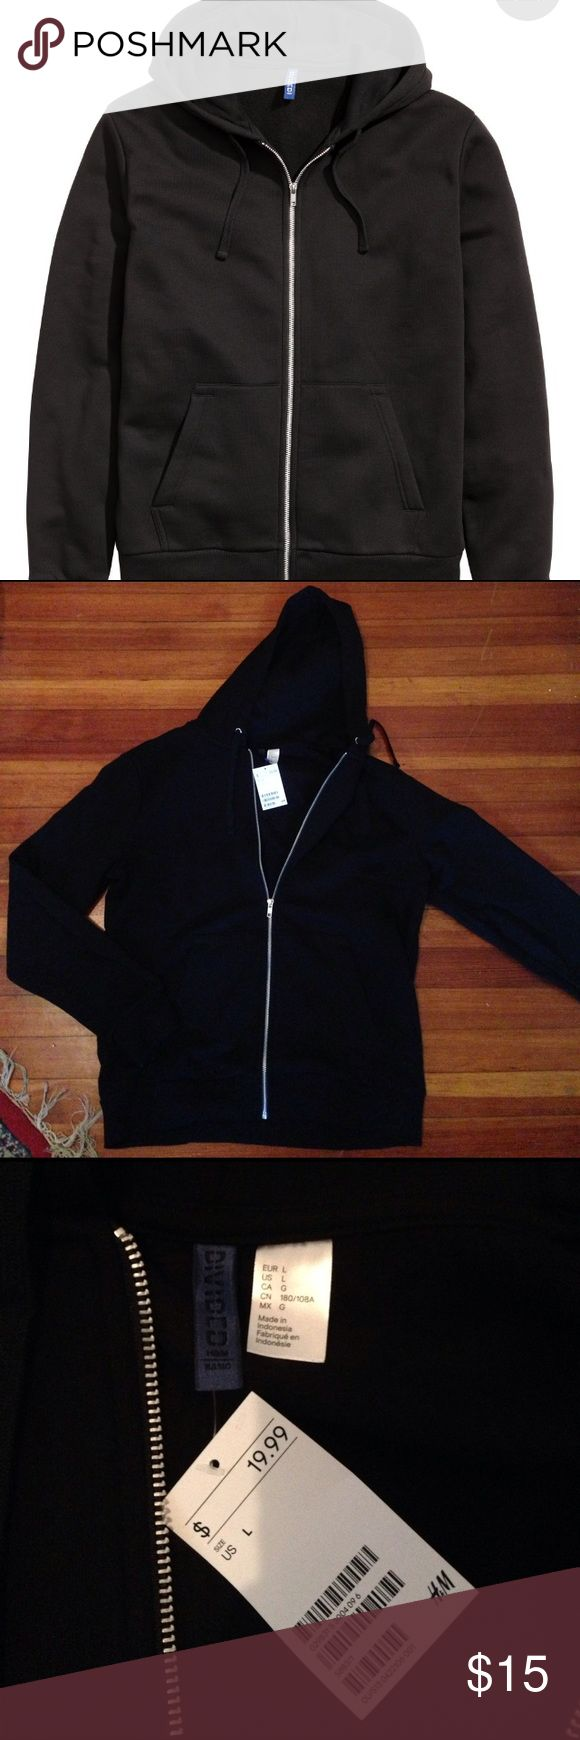 NWT H&M men's zip up hoodie L NWT mens zip up hoodie from h&m. Newly released and never worn! H&M Sweaters